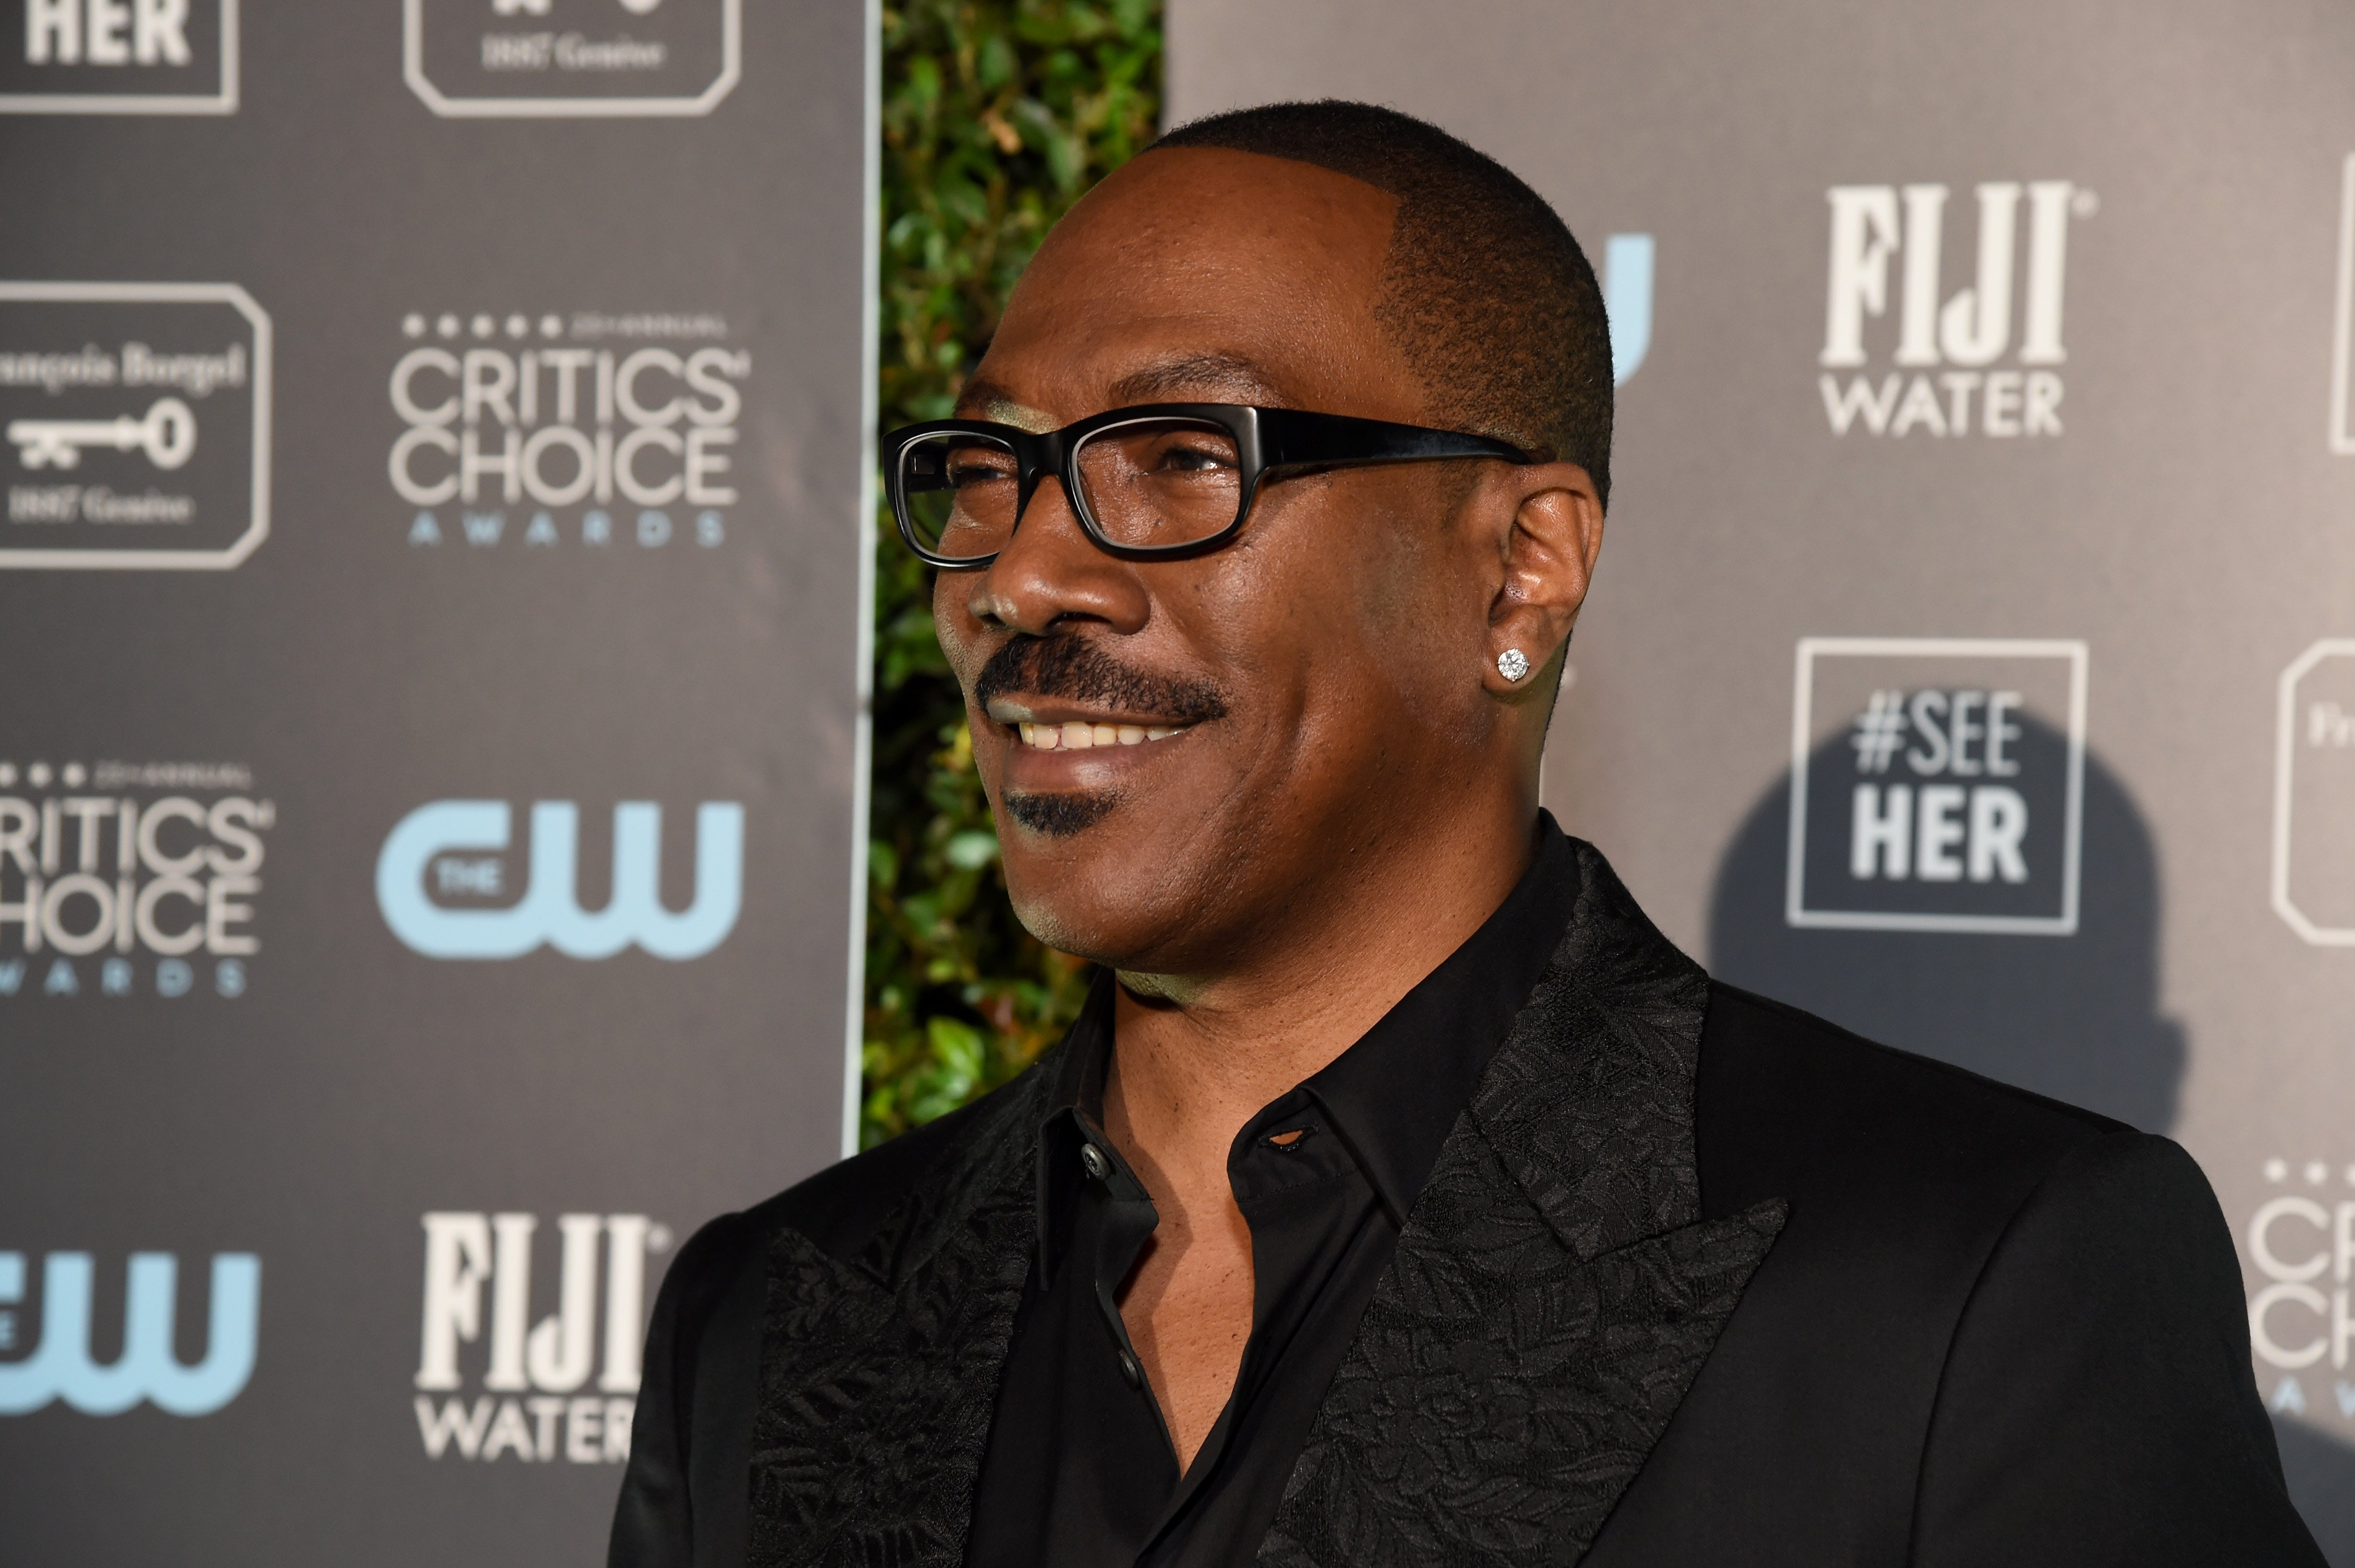 Eddie Murphy at the Critics' Choice Awards on January 12, 2020 in Santa Monica, California. | Photo: Getty Images